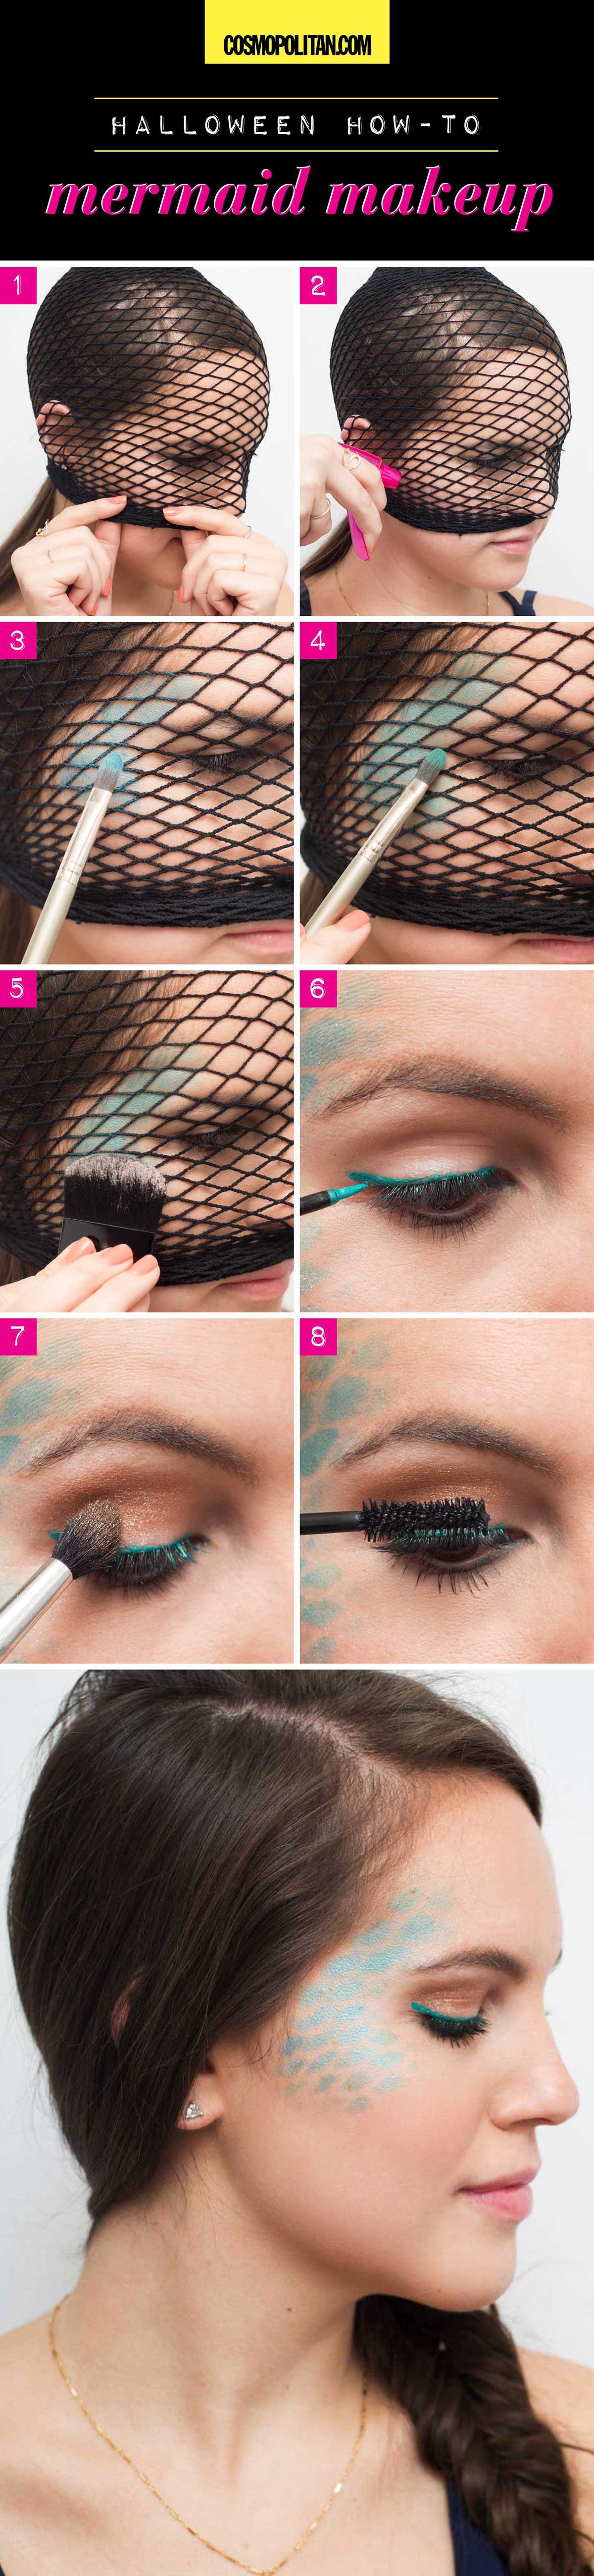 The 10 Easiest Halloween Makeup Ideas of All Damn Time